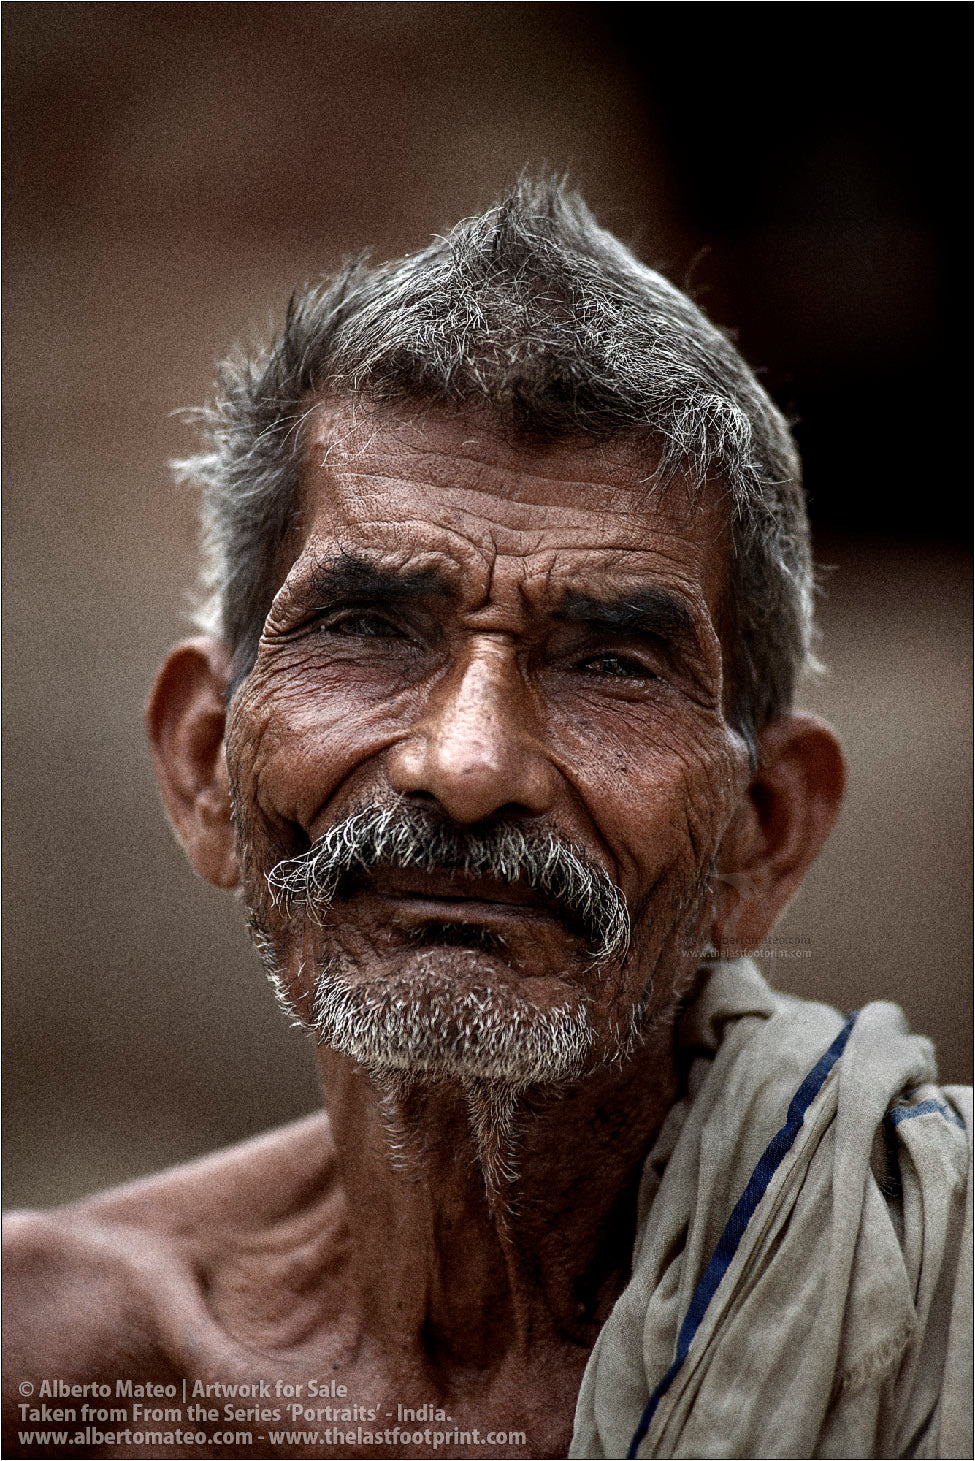 Portrait of elderly Man, Ballia, Uttar Pradesh, India. [COLOR]